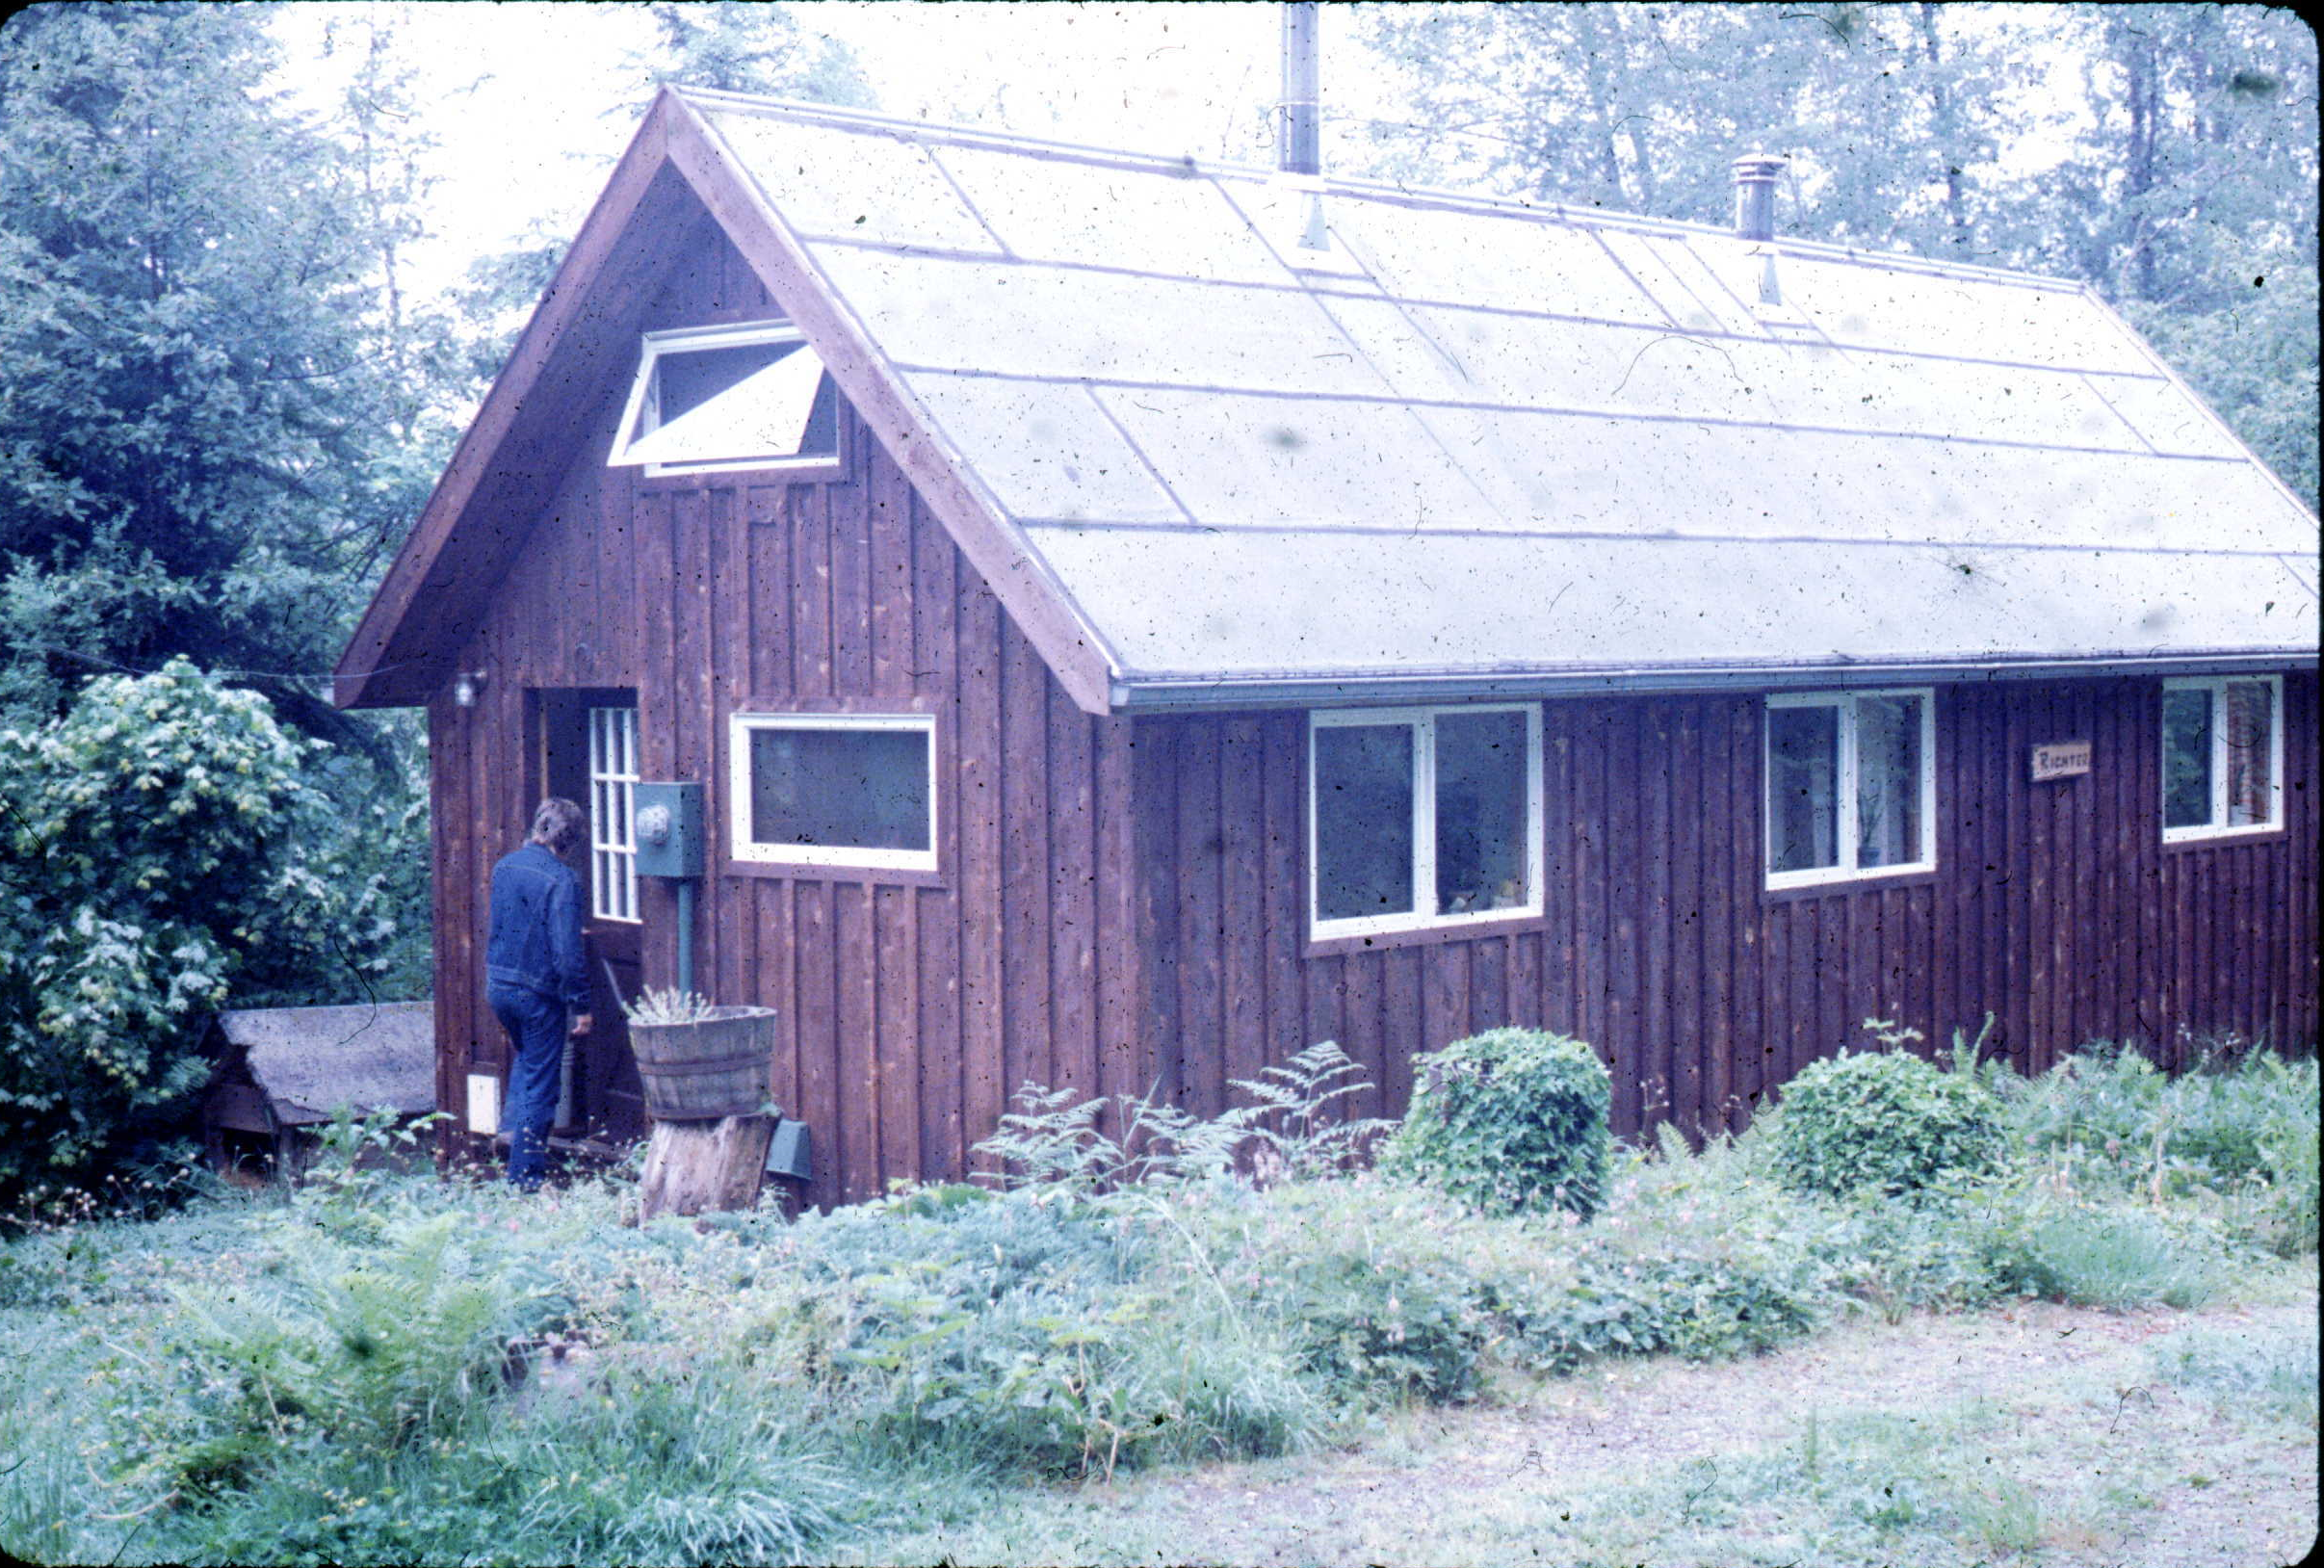 Mosswood Hollow 1983.